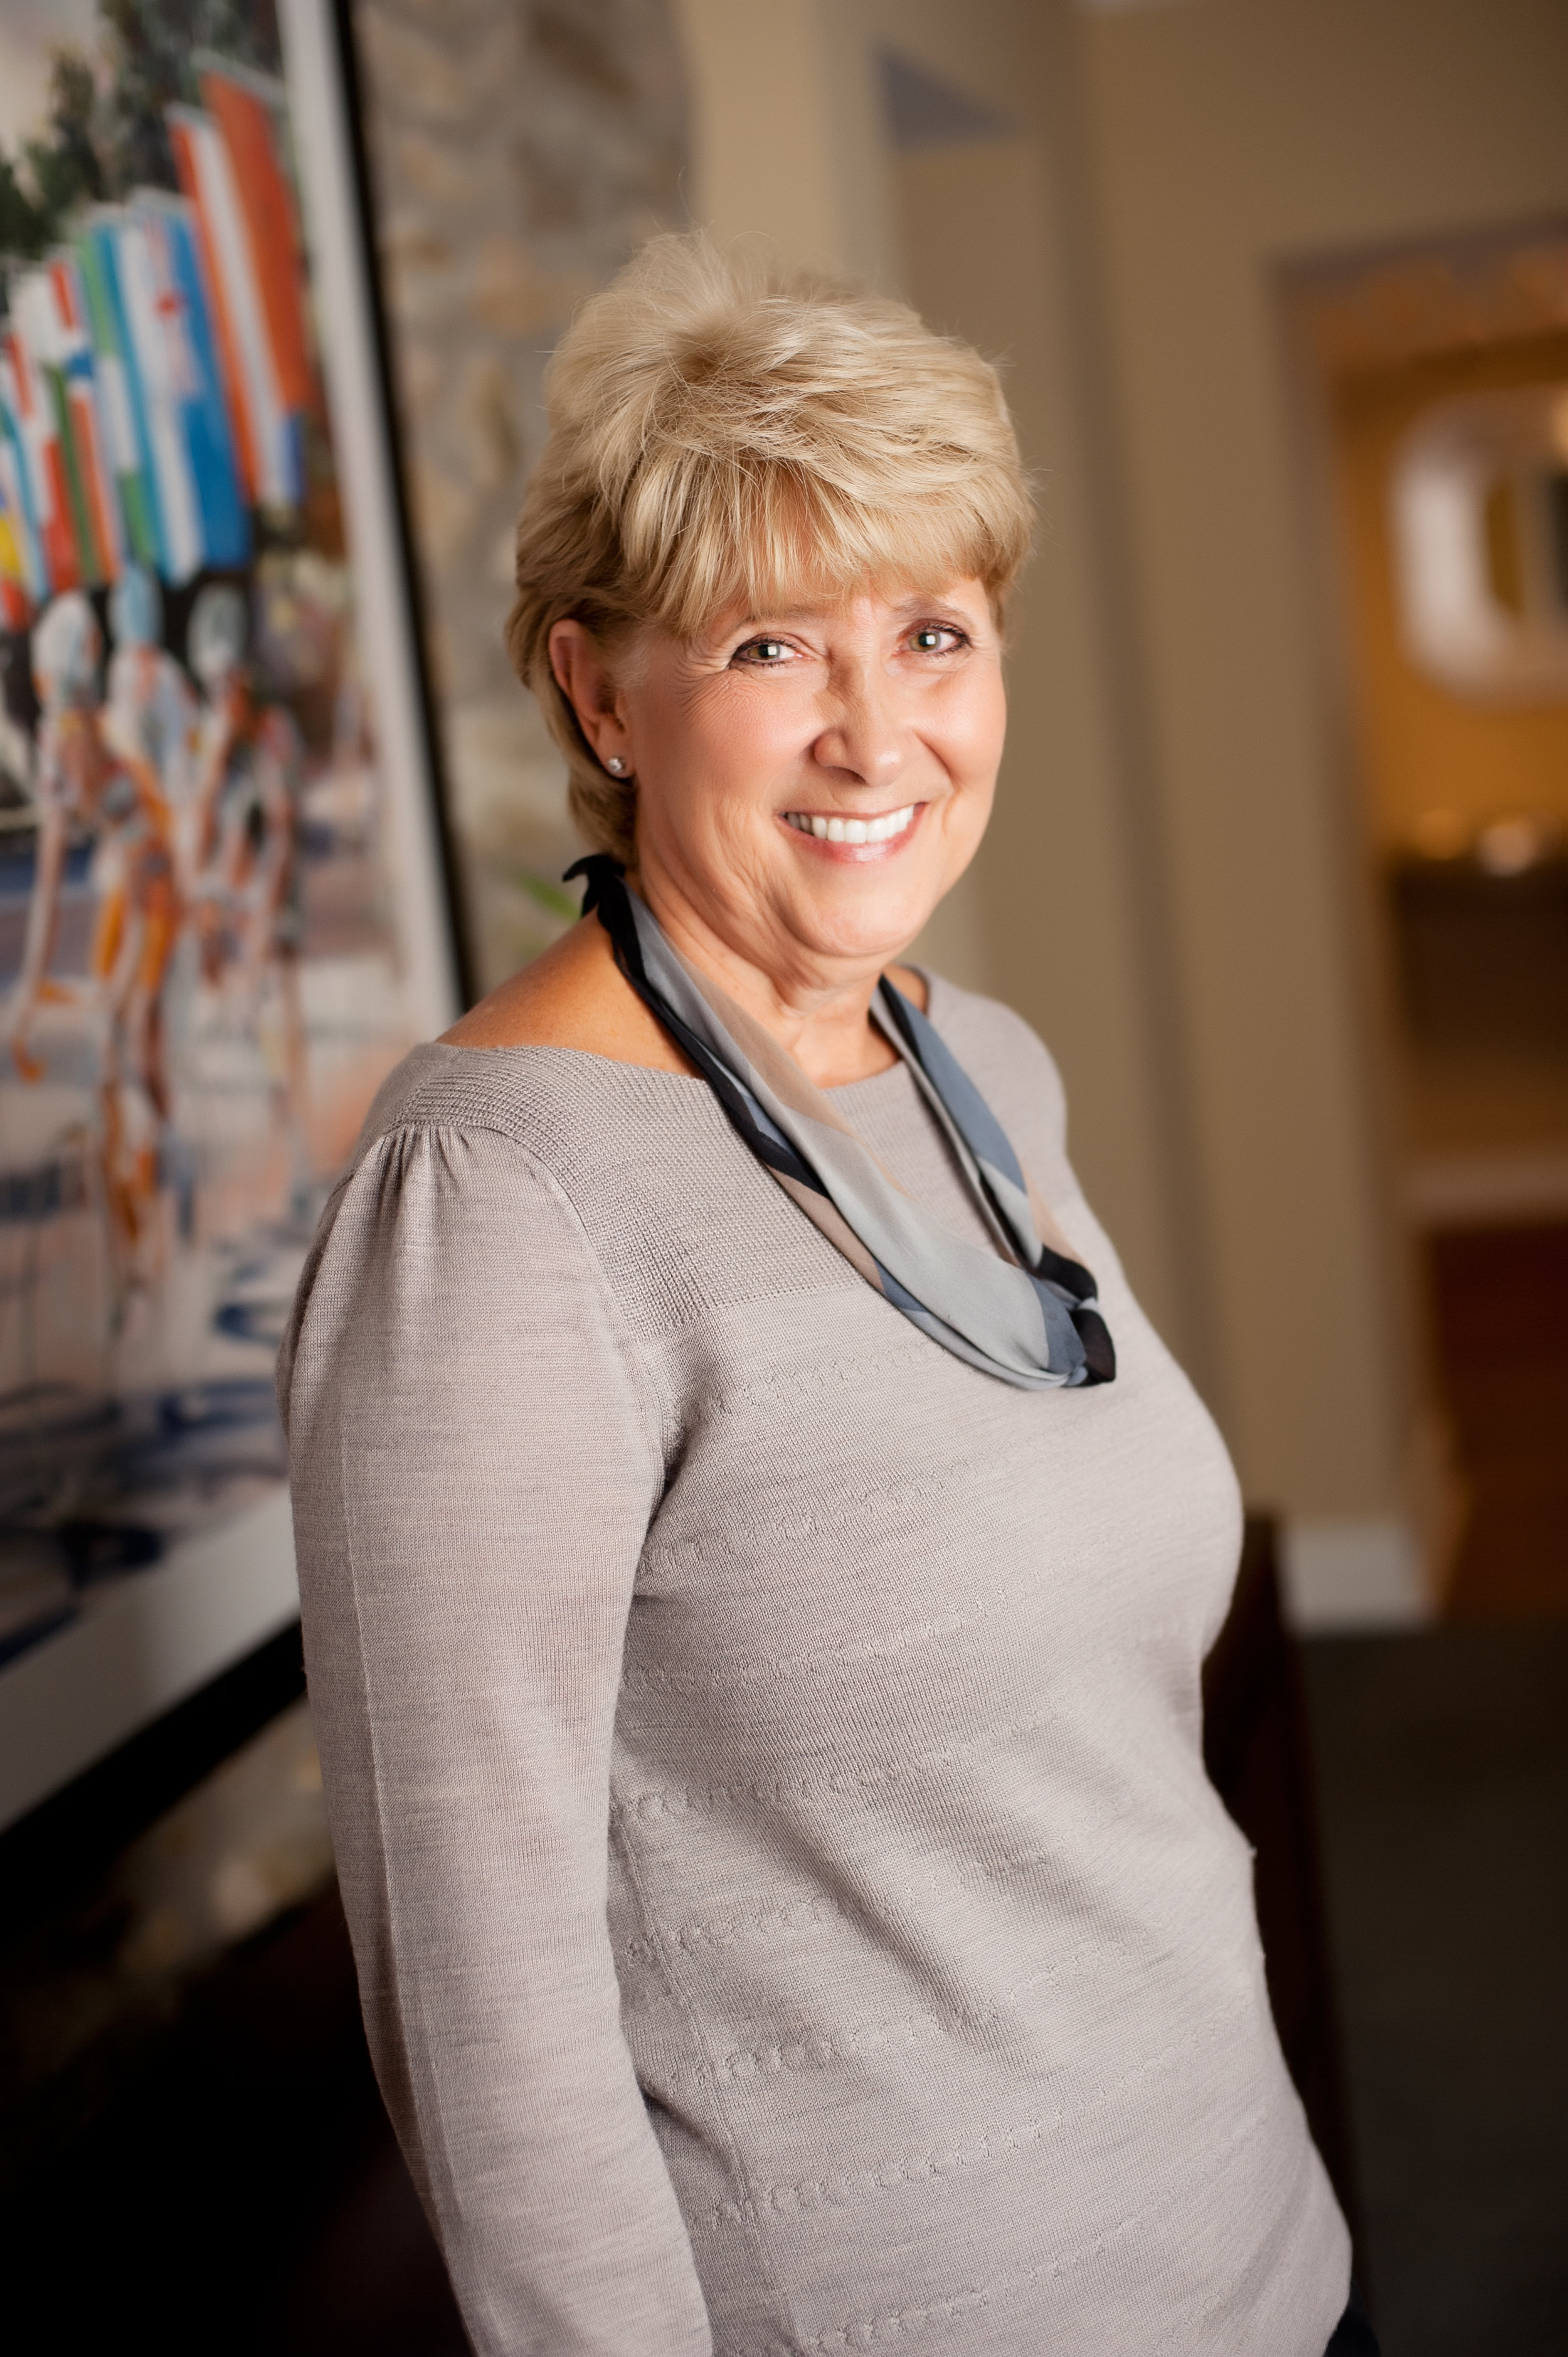 "JoAnne Howell - JoAnne dedicated many years of her professional career to her job as the Payroll Manager at Asplundh and after retirement, joined the Marathon team in 2015. JoAnne ""wears many hats"" and is a valuable part of our team - she handles payroll, accounts payable, accounts receivable, state licensing requirements, client follow up, and much more. Although she fits a lot of work into her part time schedule, she enjoys spending her time off traveling.joanne@marathonhomeloans.com"